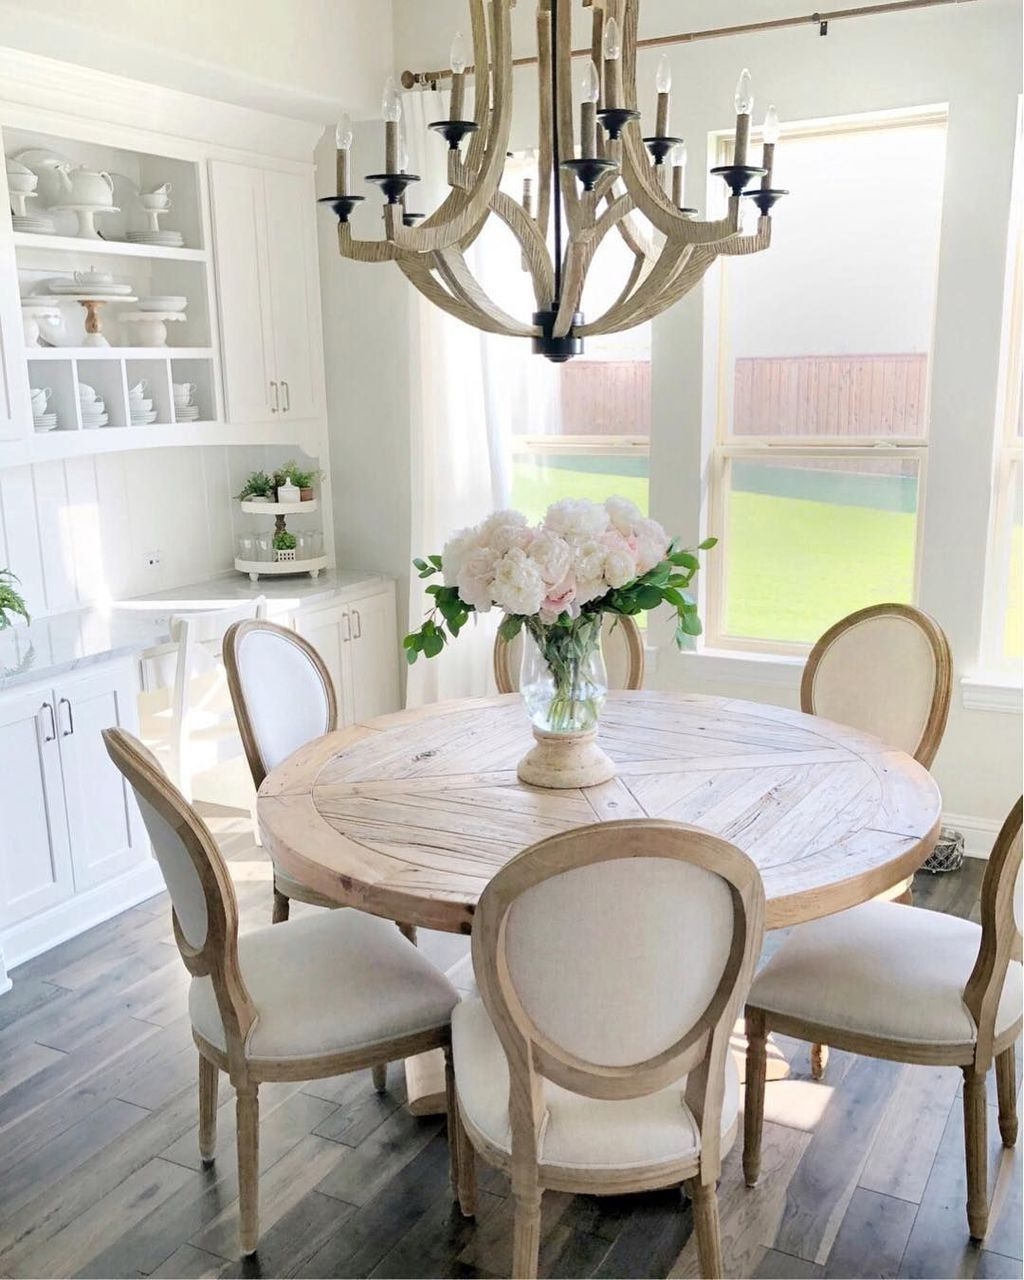 30+ Rustic Farmhouse Dining Room Design Ideas | Farmhouse ...